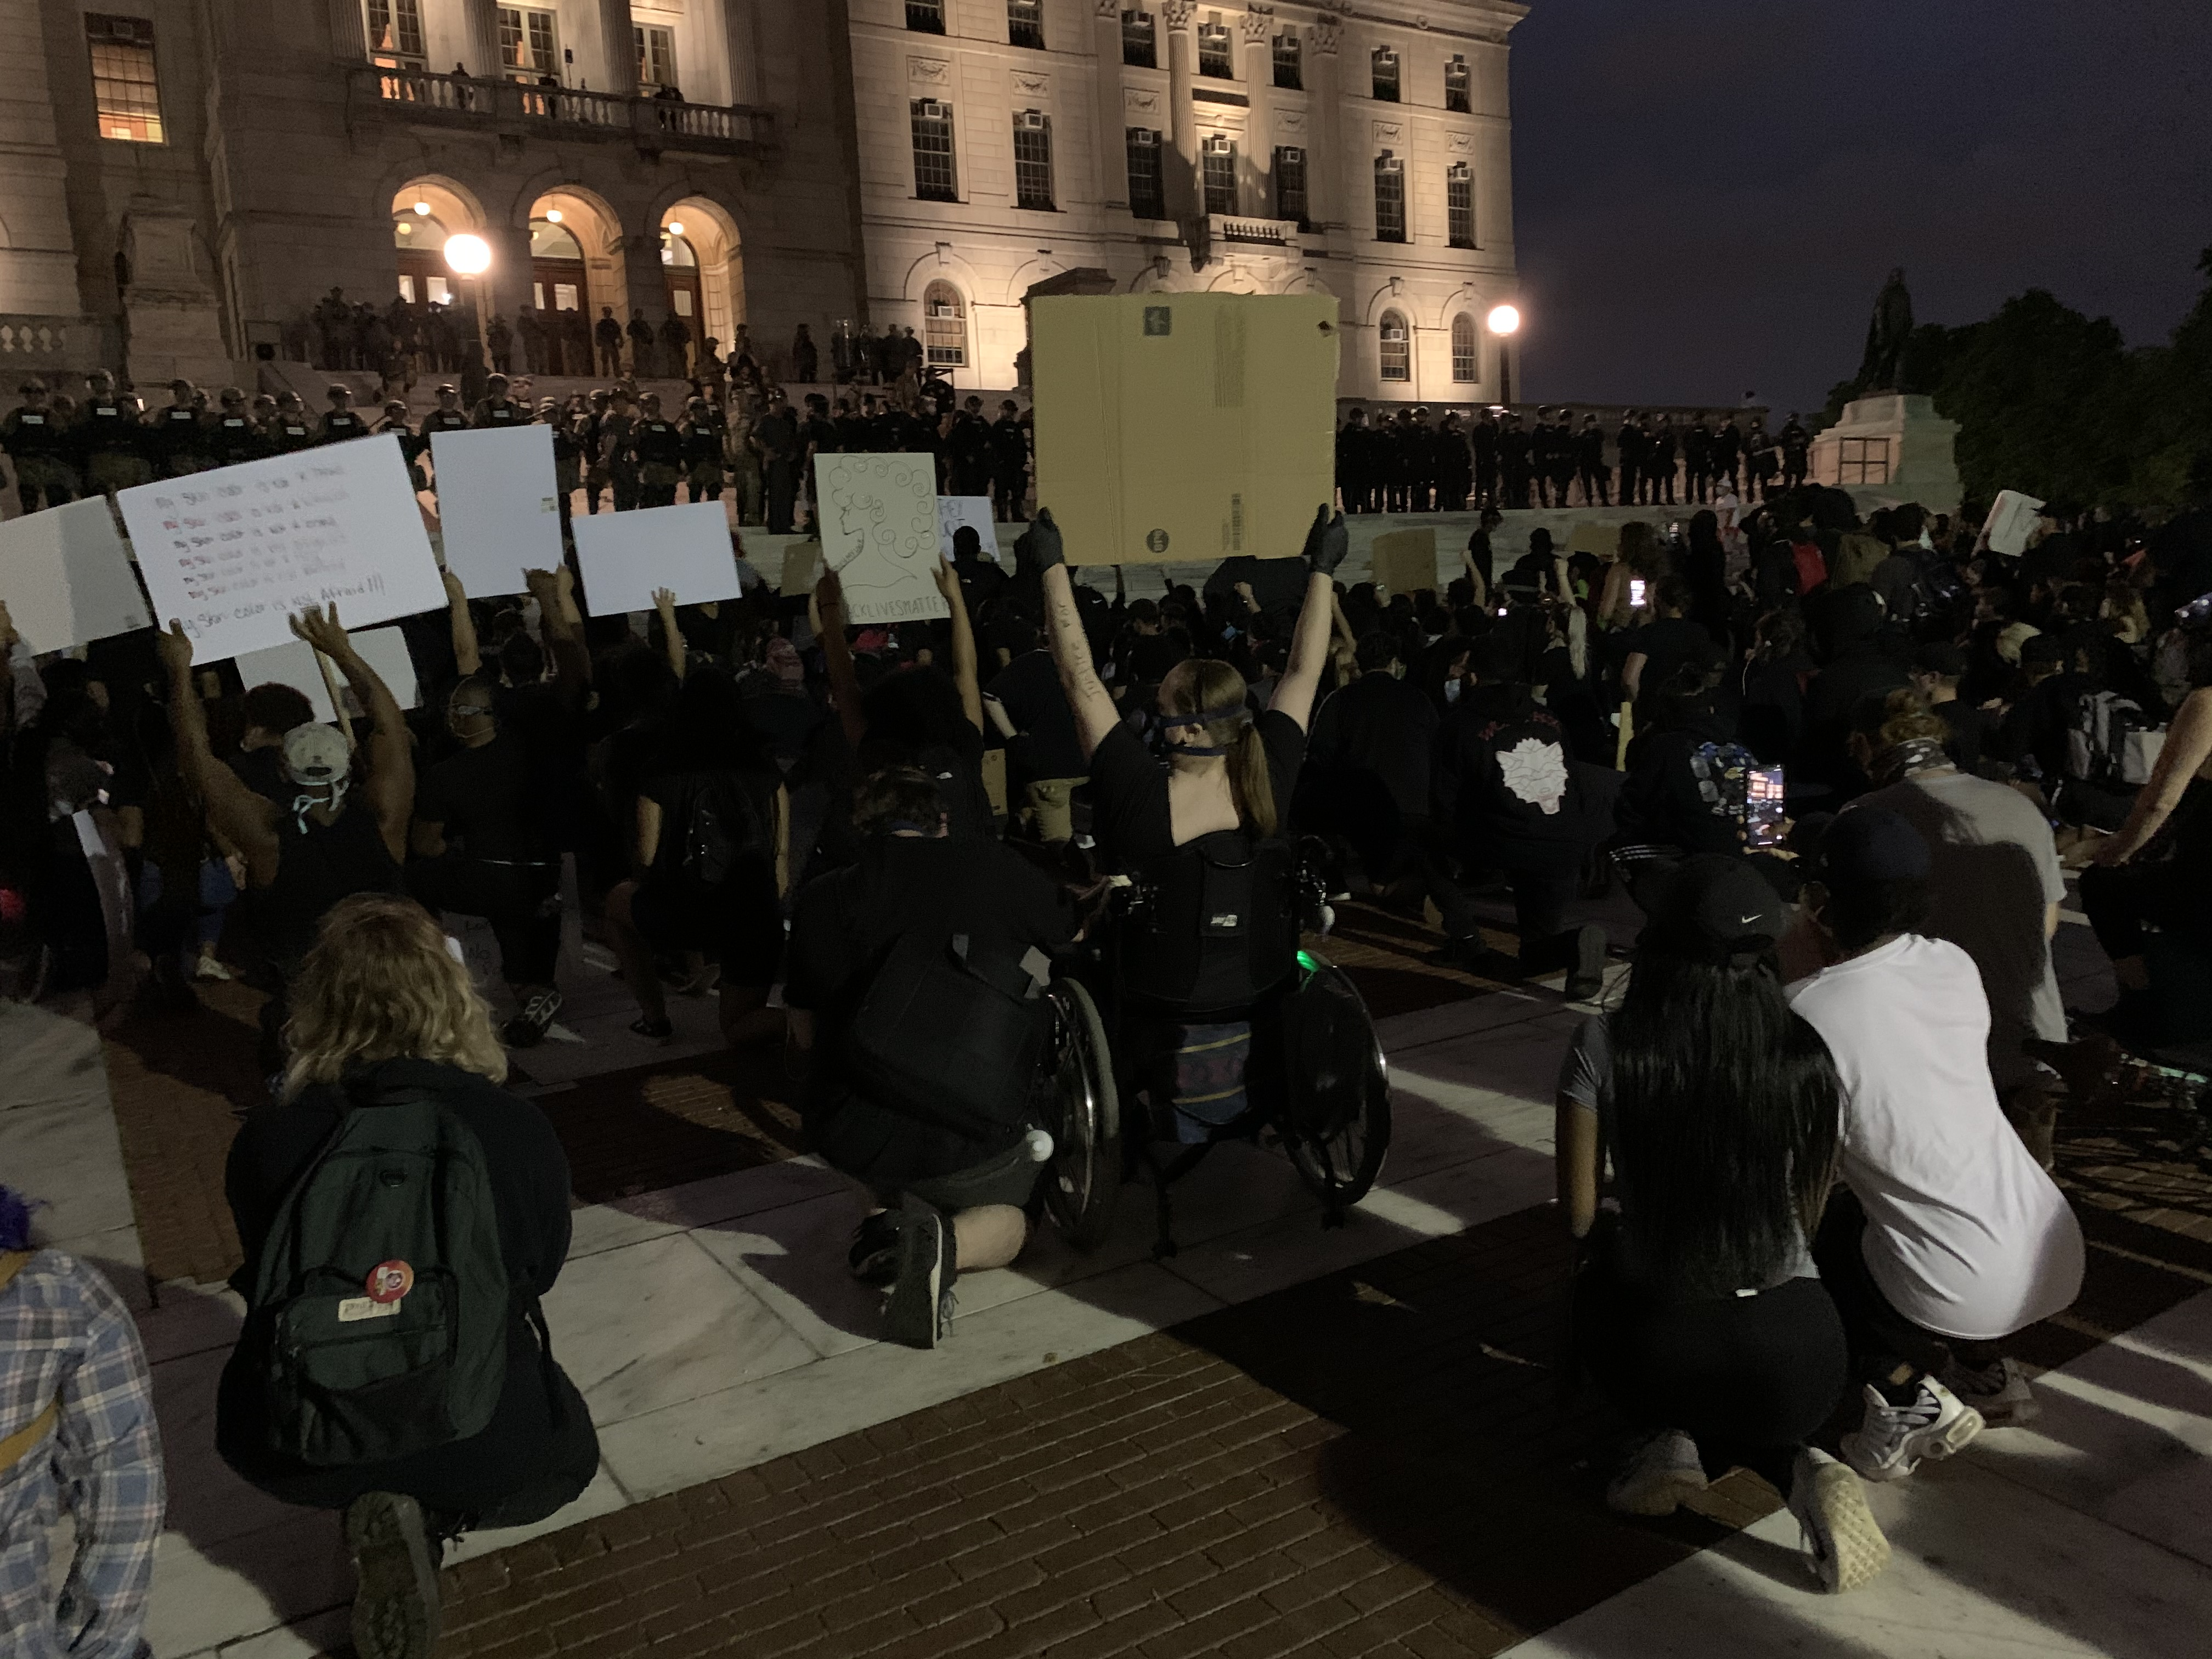 Protesters broke Providence's 9 pm curfew to continue demonstrating outside the Rhode Island State House.